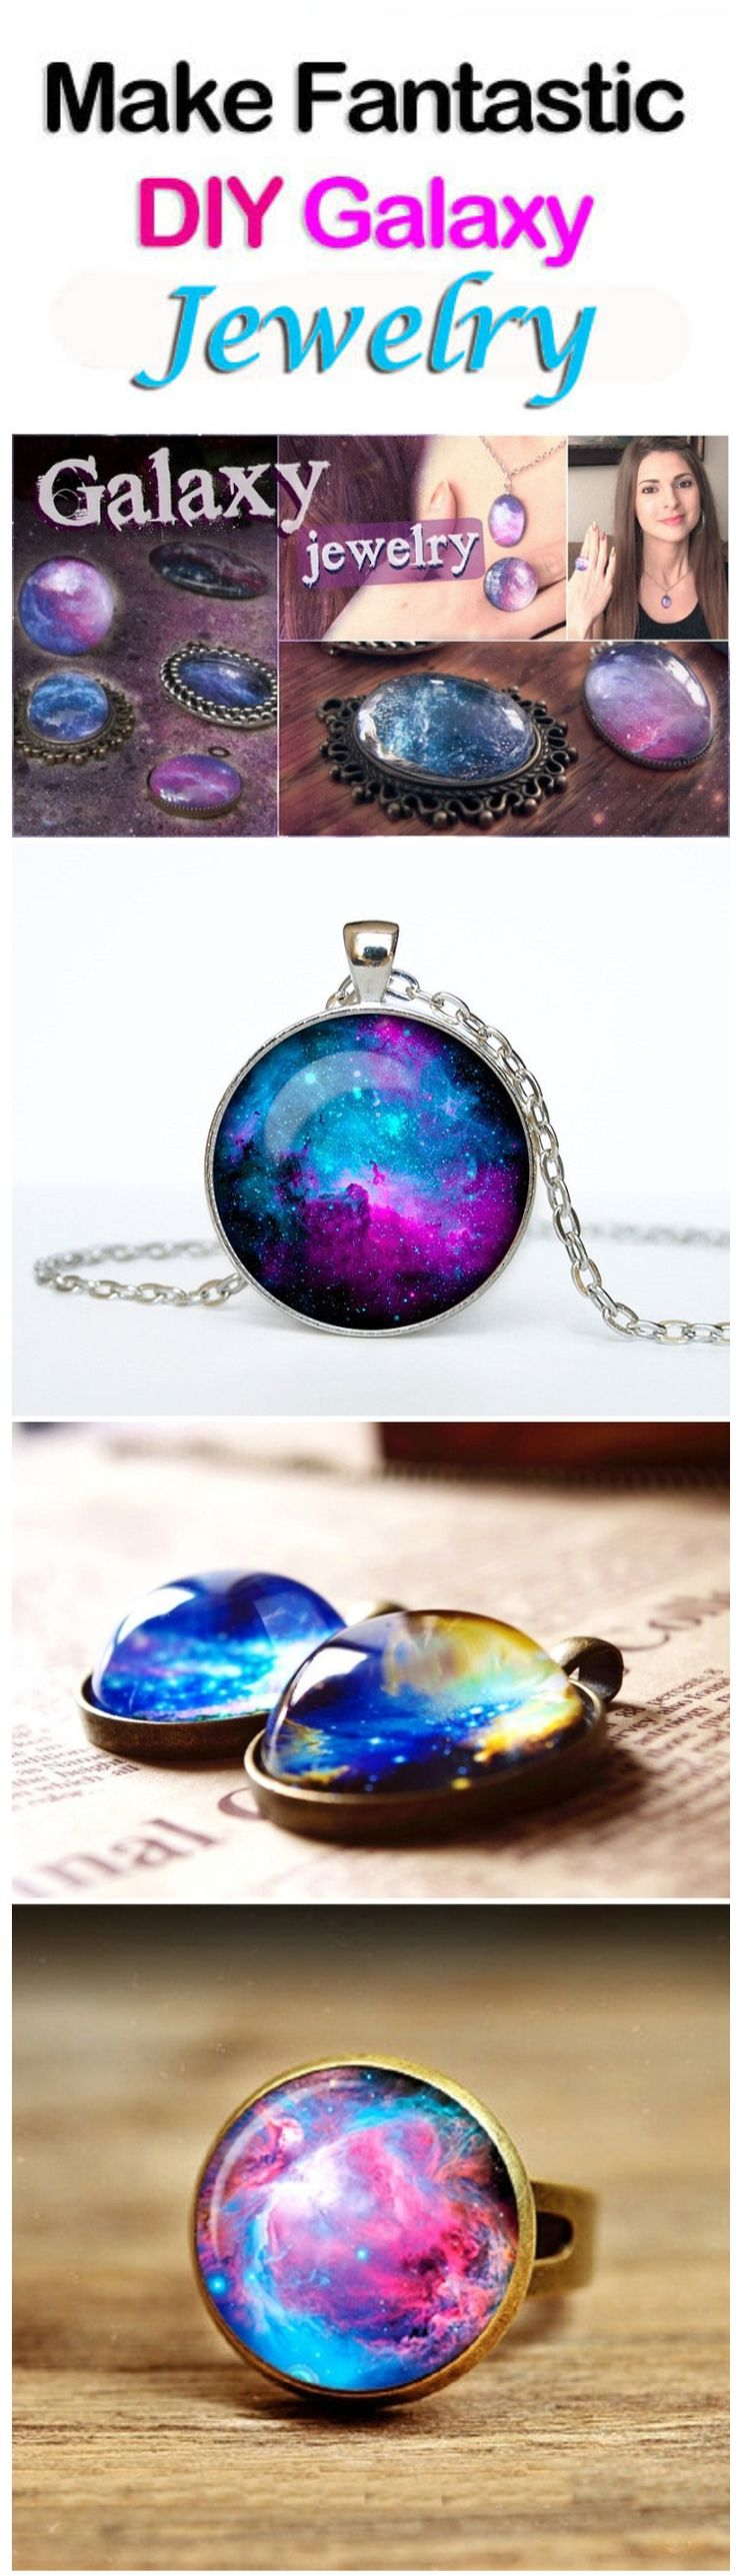 Make Wonderful DIY Galaxy Jewelry